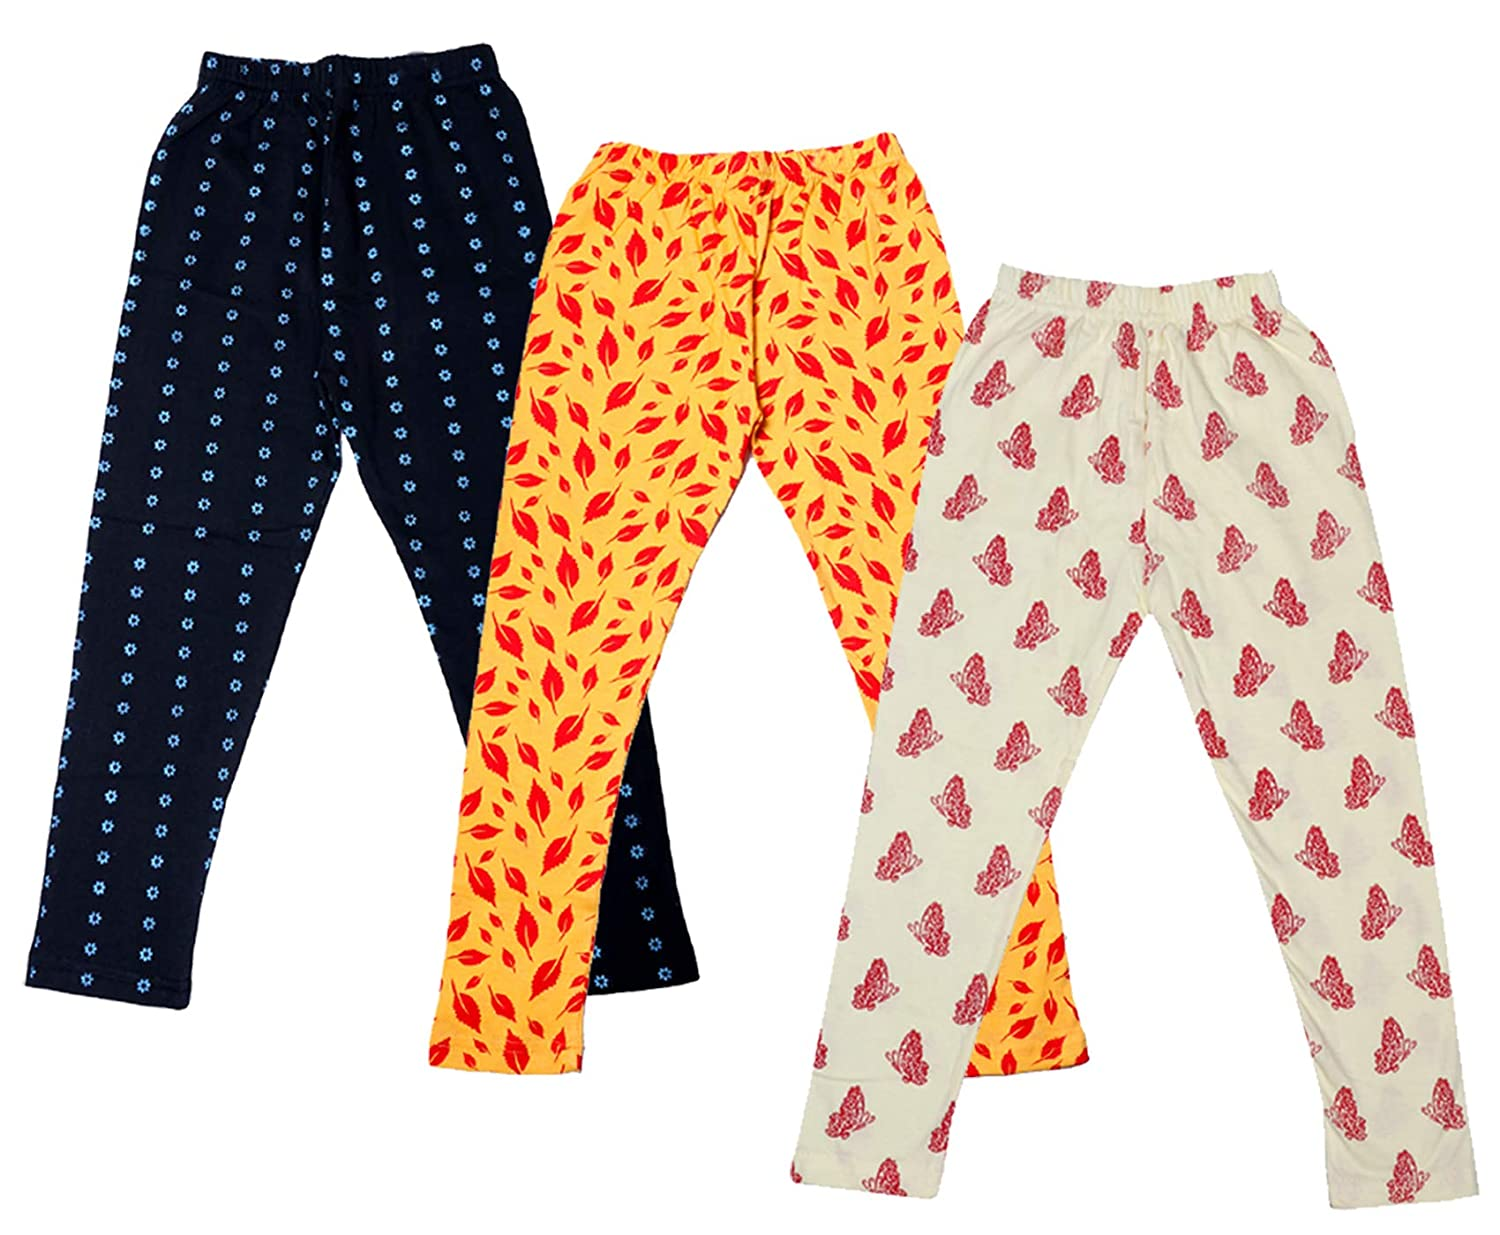 Indistar Girls Cotton Printed Leggings Pants Pack of 3